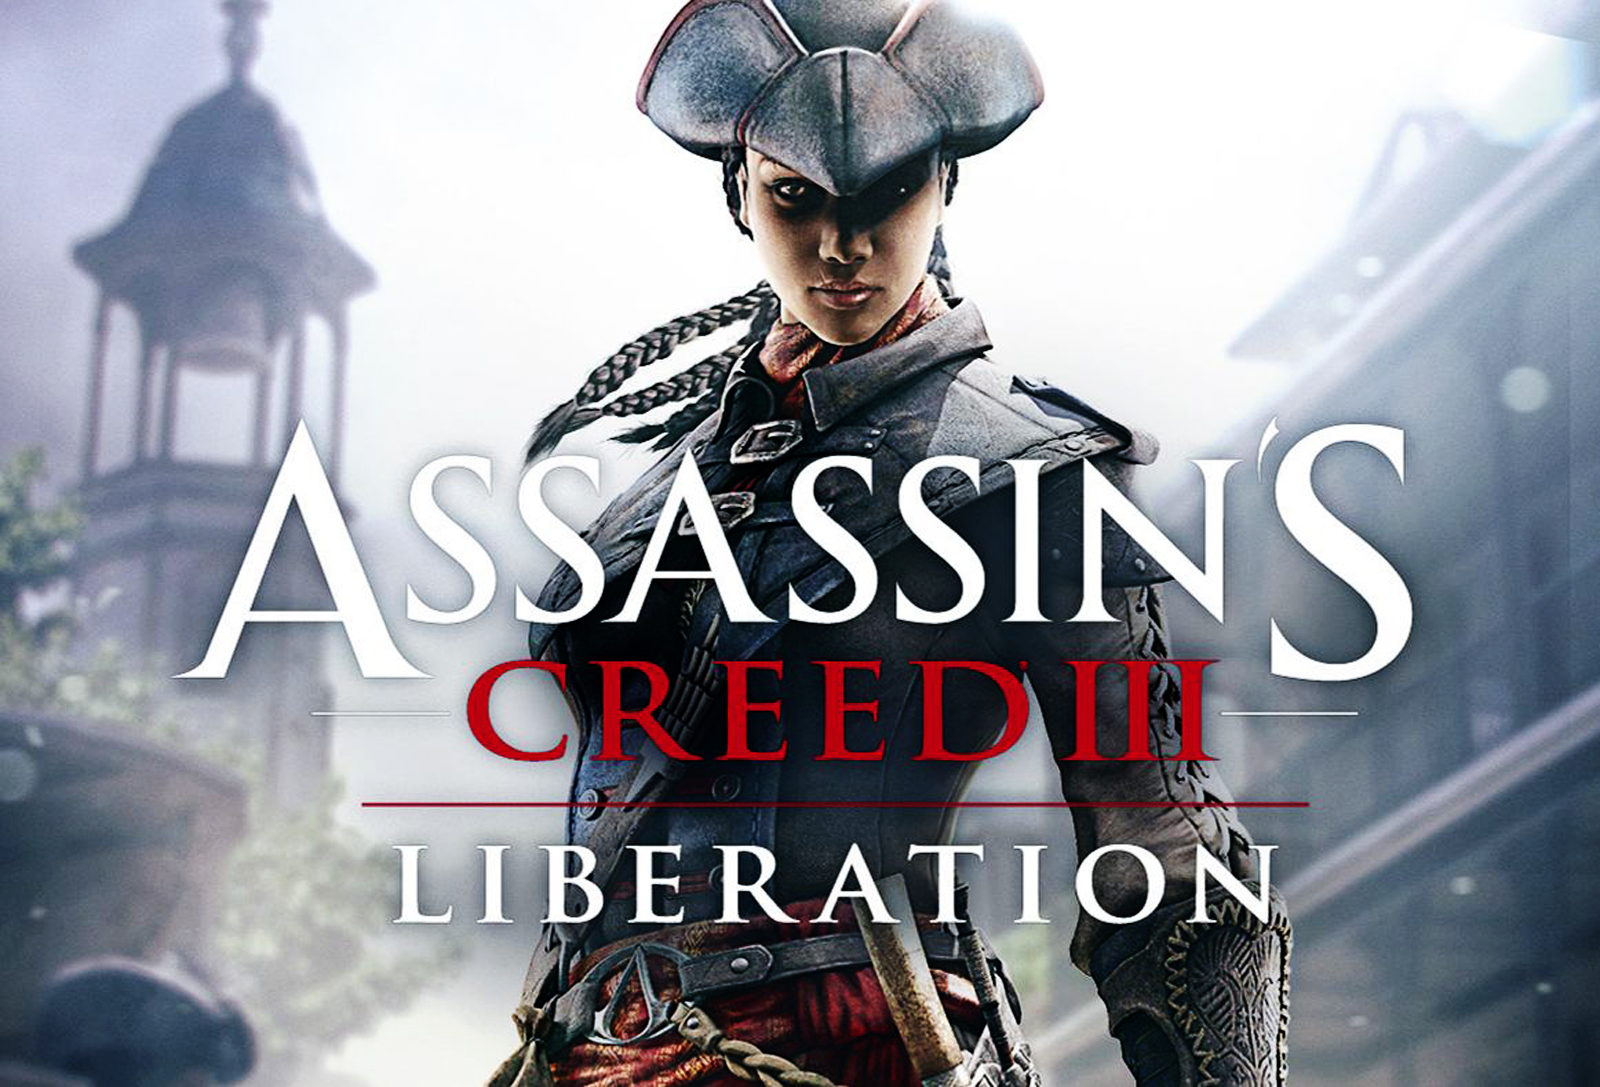 http://2.bp.blogspot.com/-q-VUFz3FXtc/UJEH2651blI/AAAAAAAAFwI/JFnTNMrdDXU/s1600/Assassins-Creed-3-Liberation-Aveline-HD-Wallpaper_Vvallpaper.Net.jpg